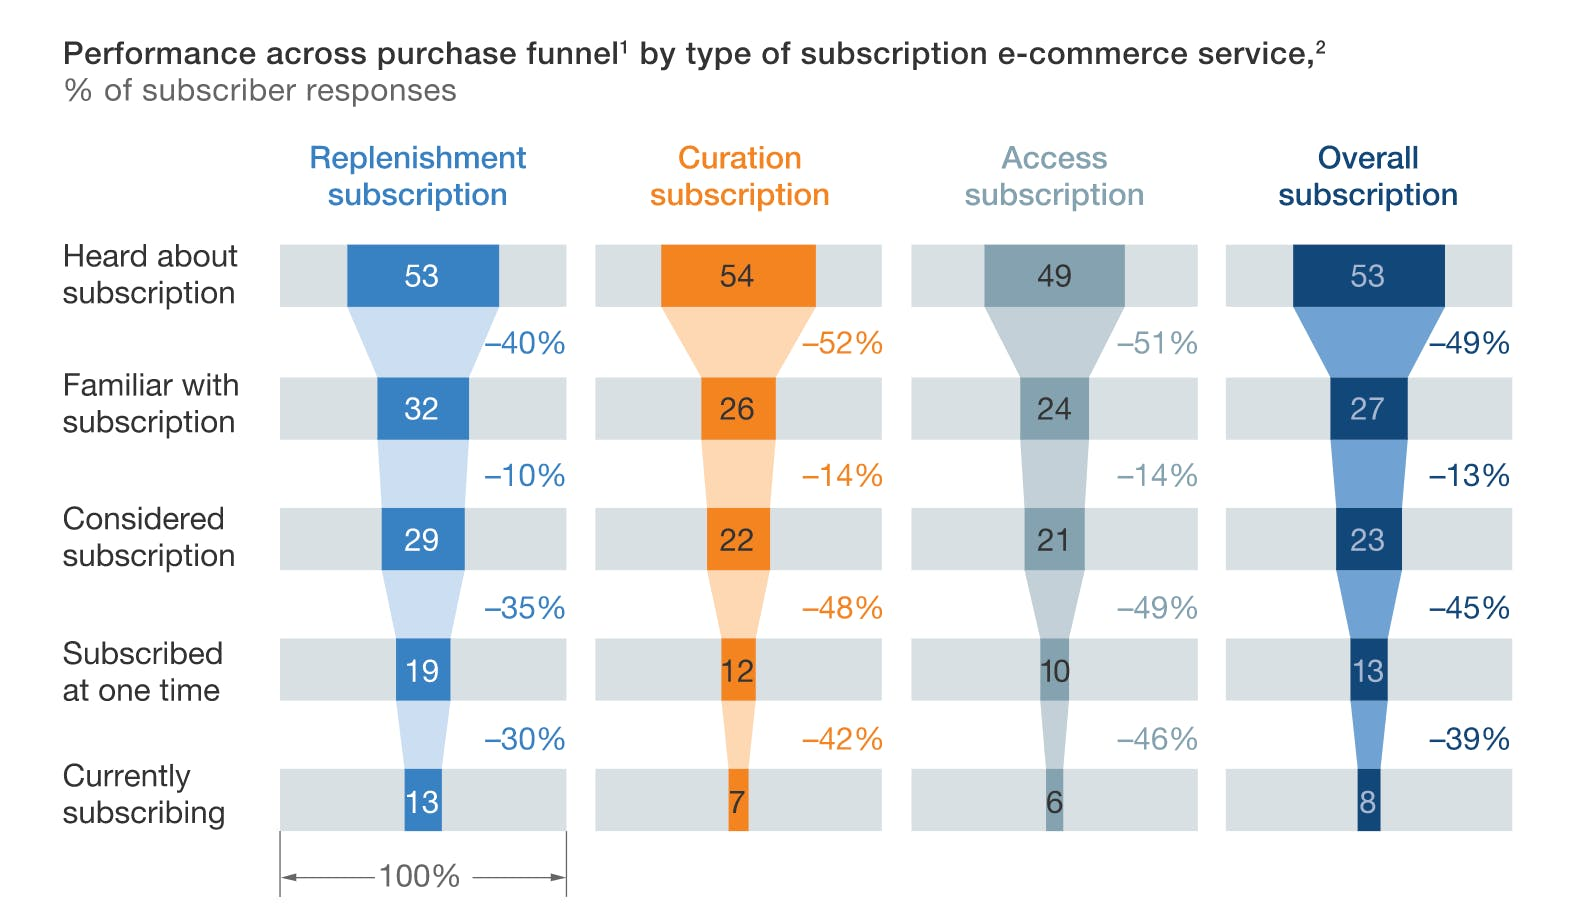 Performance across purchase funnel by type of subscription e-commerce service